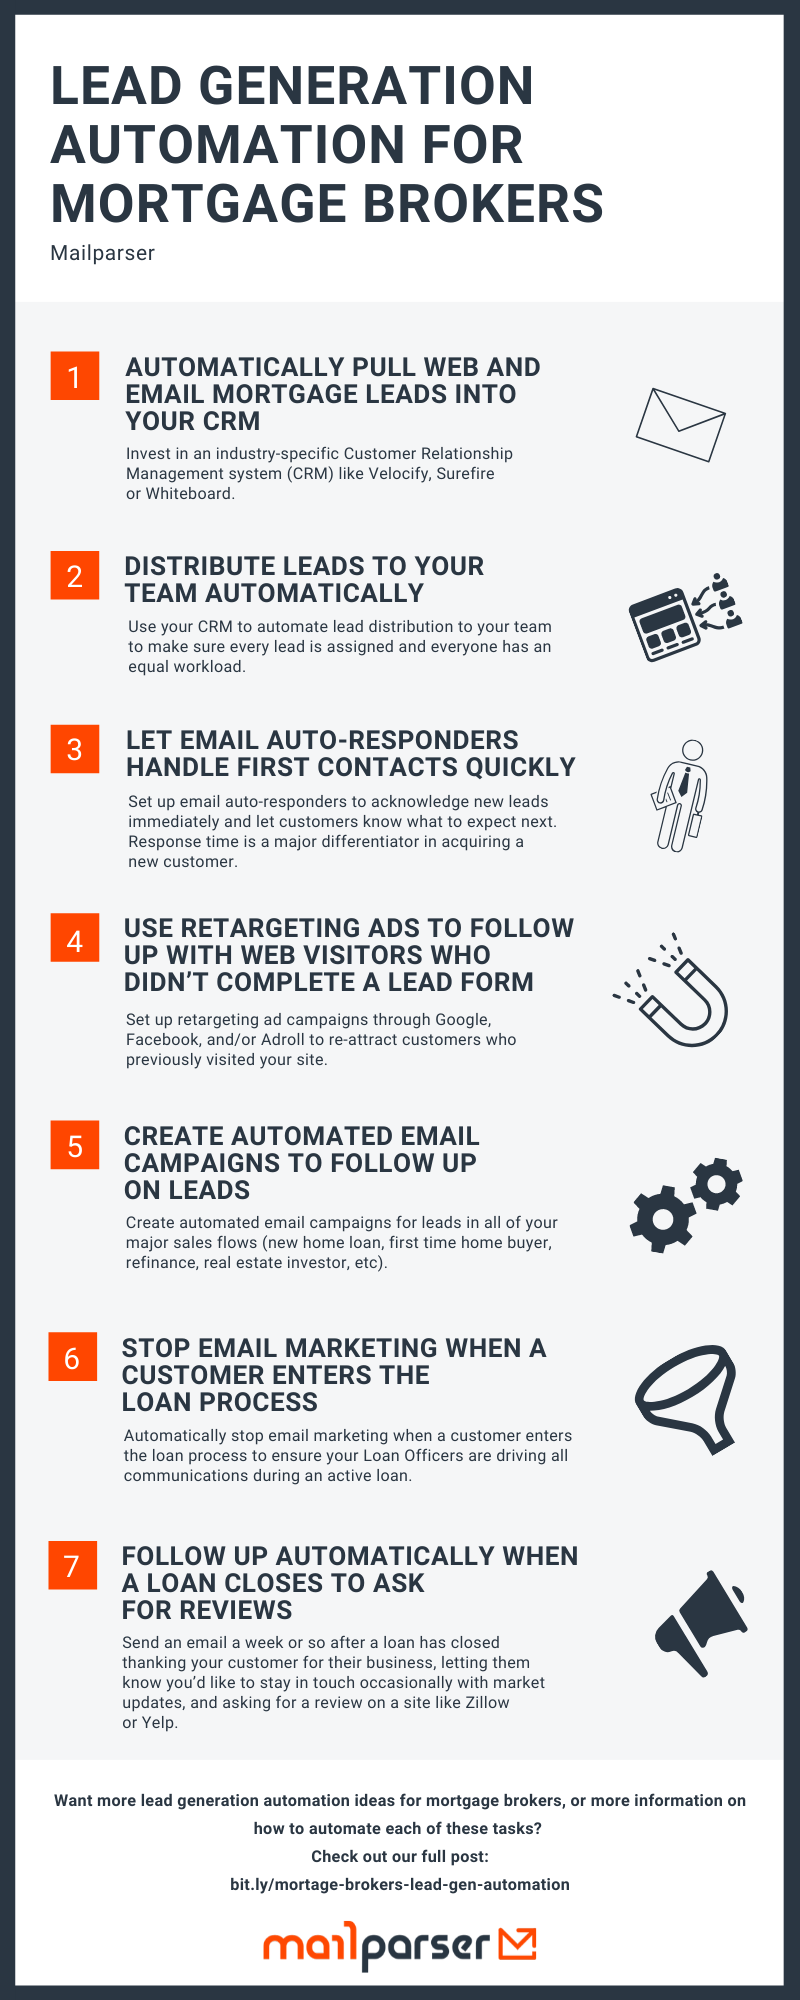 Mortgage Brokers Lead Generation Automation Infographic